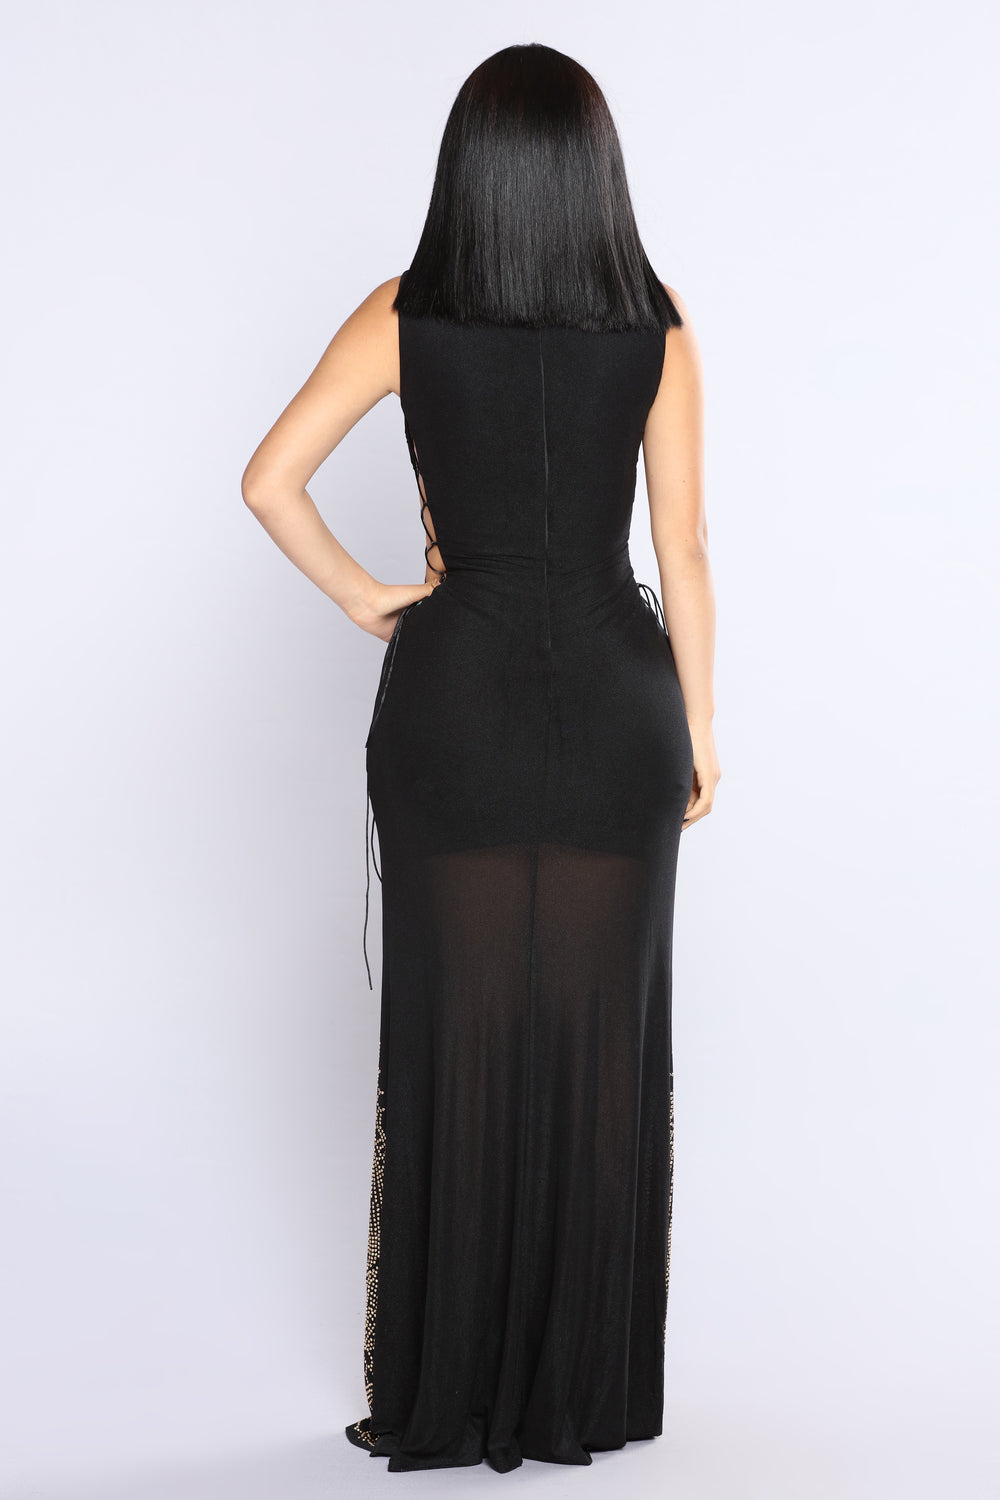 Gem To Perfection Dress - Black